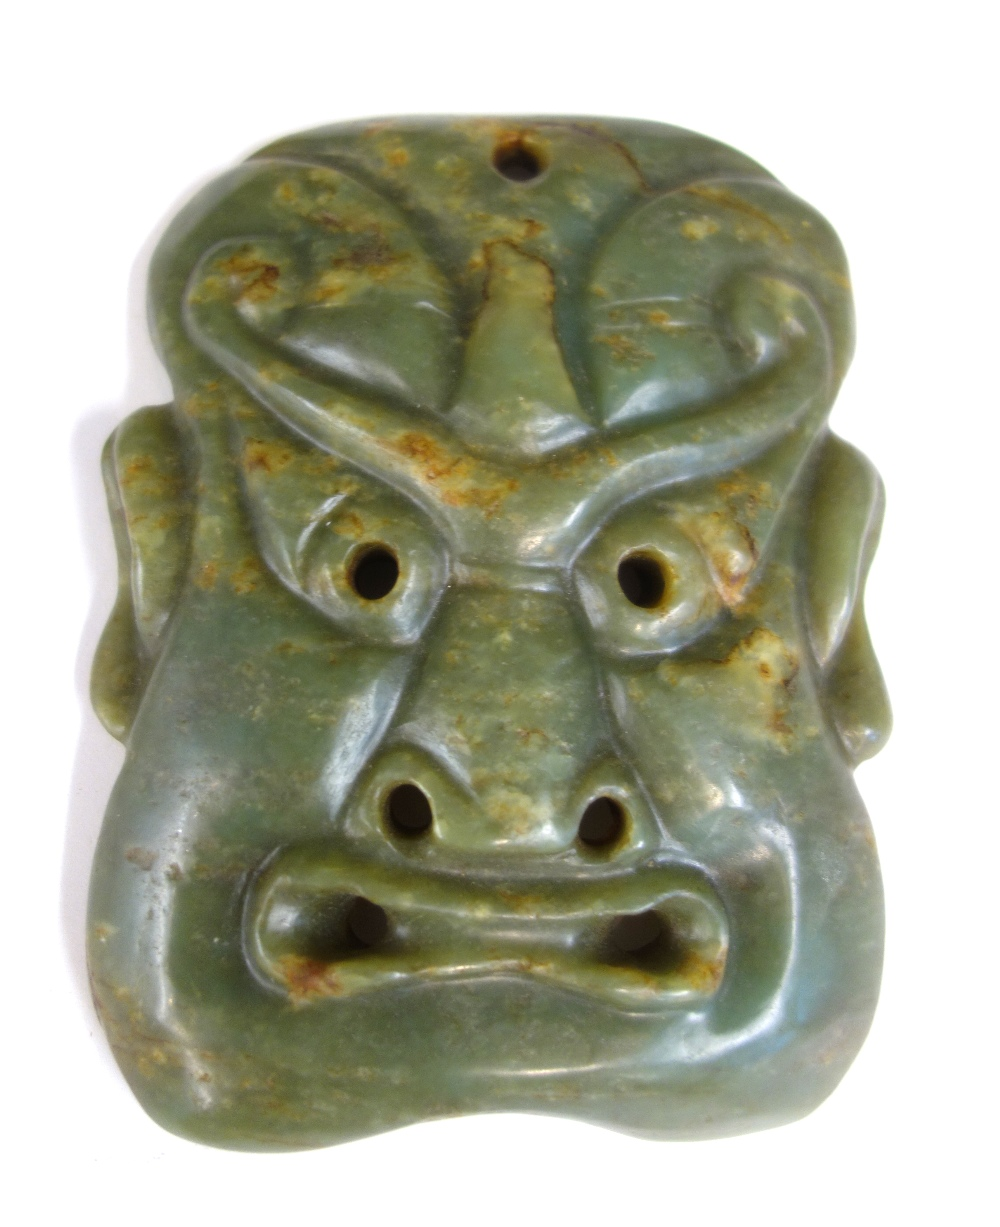 Lot 1363 - A Chinese jade mask, carved as a grimacing face, with pierced eyes, nostrils and mouth, 15cm.high.